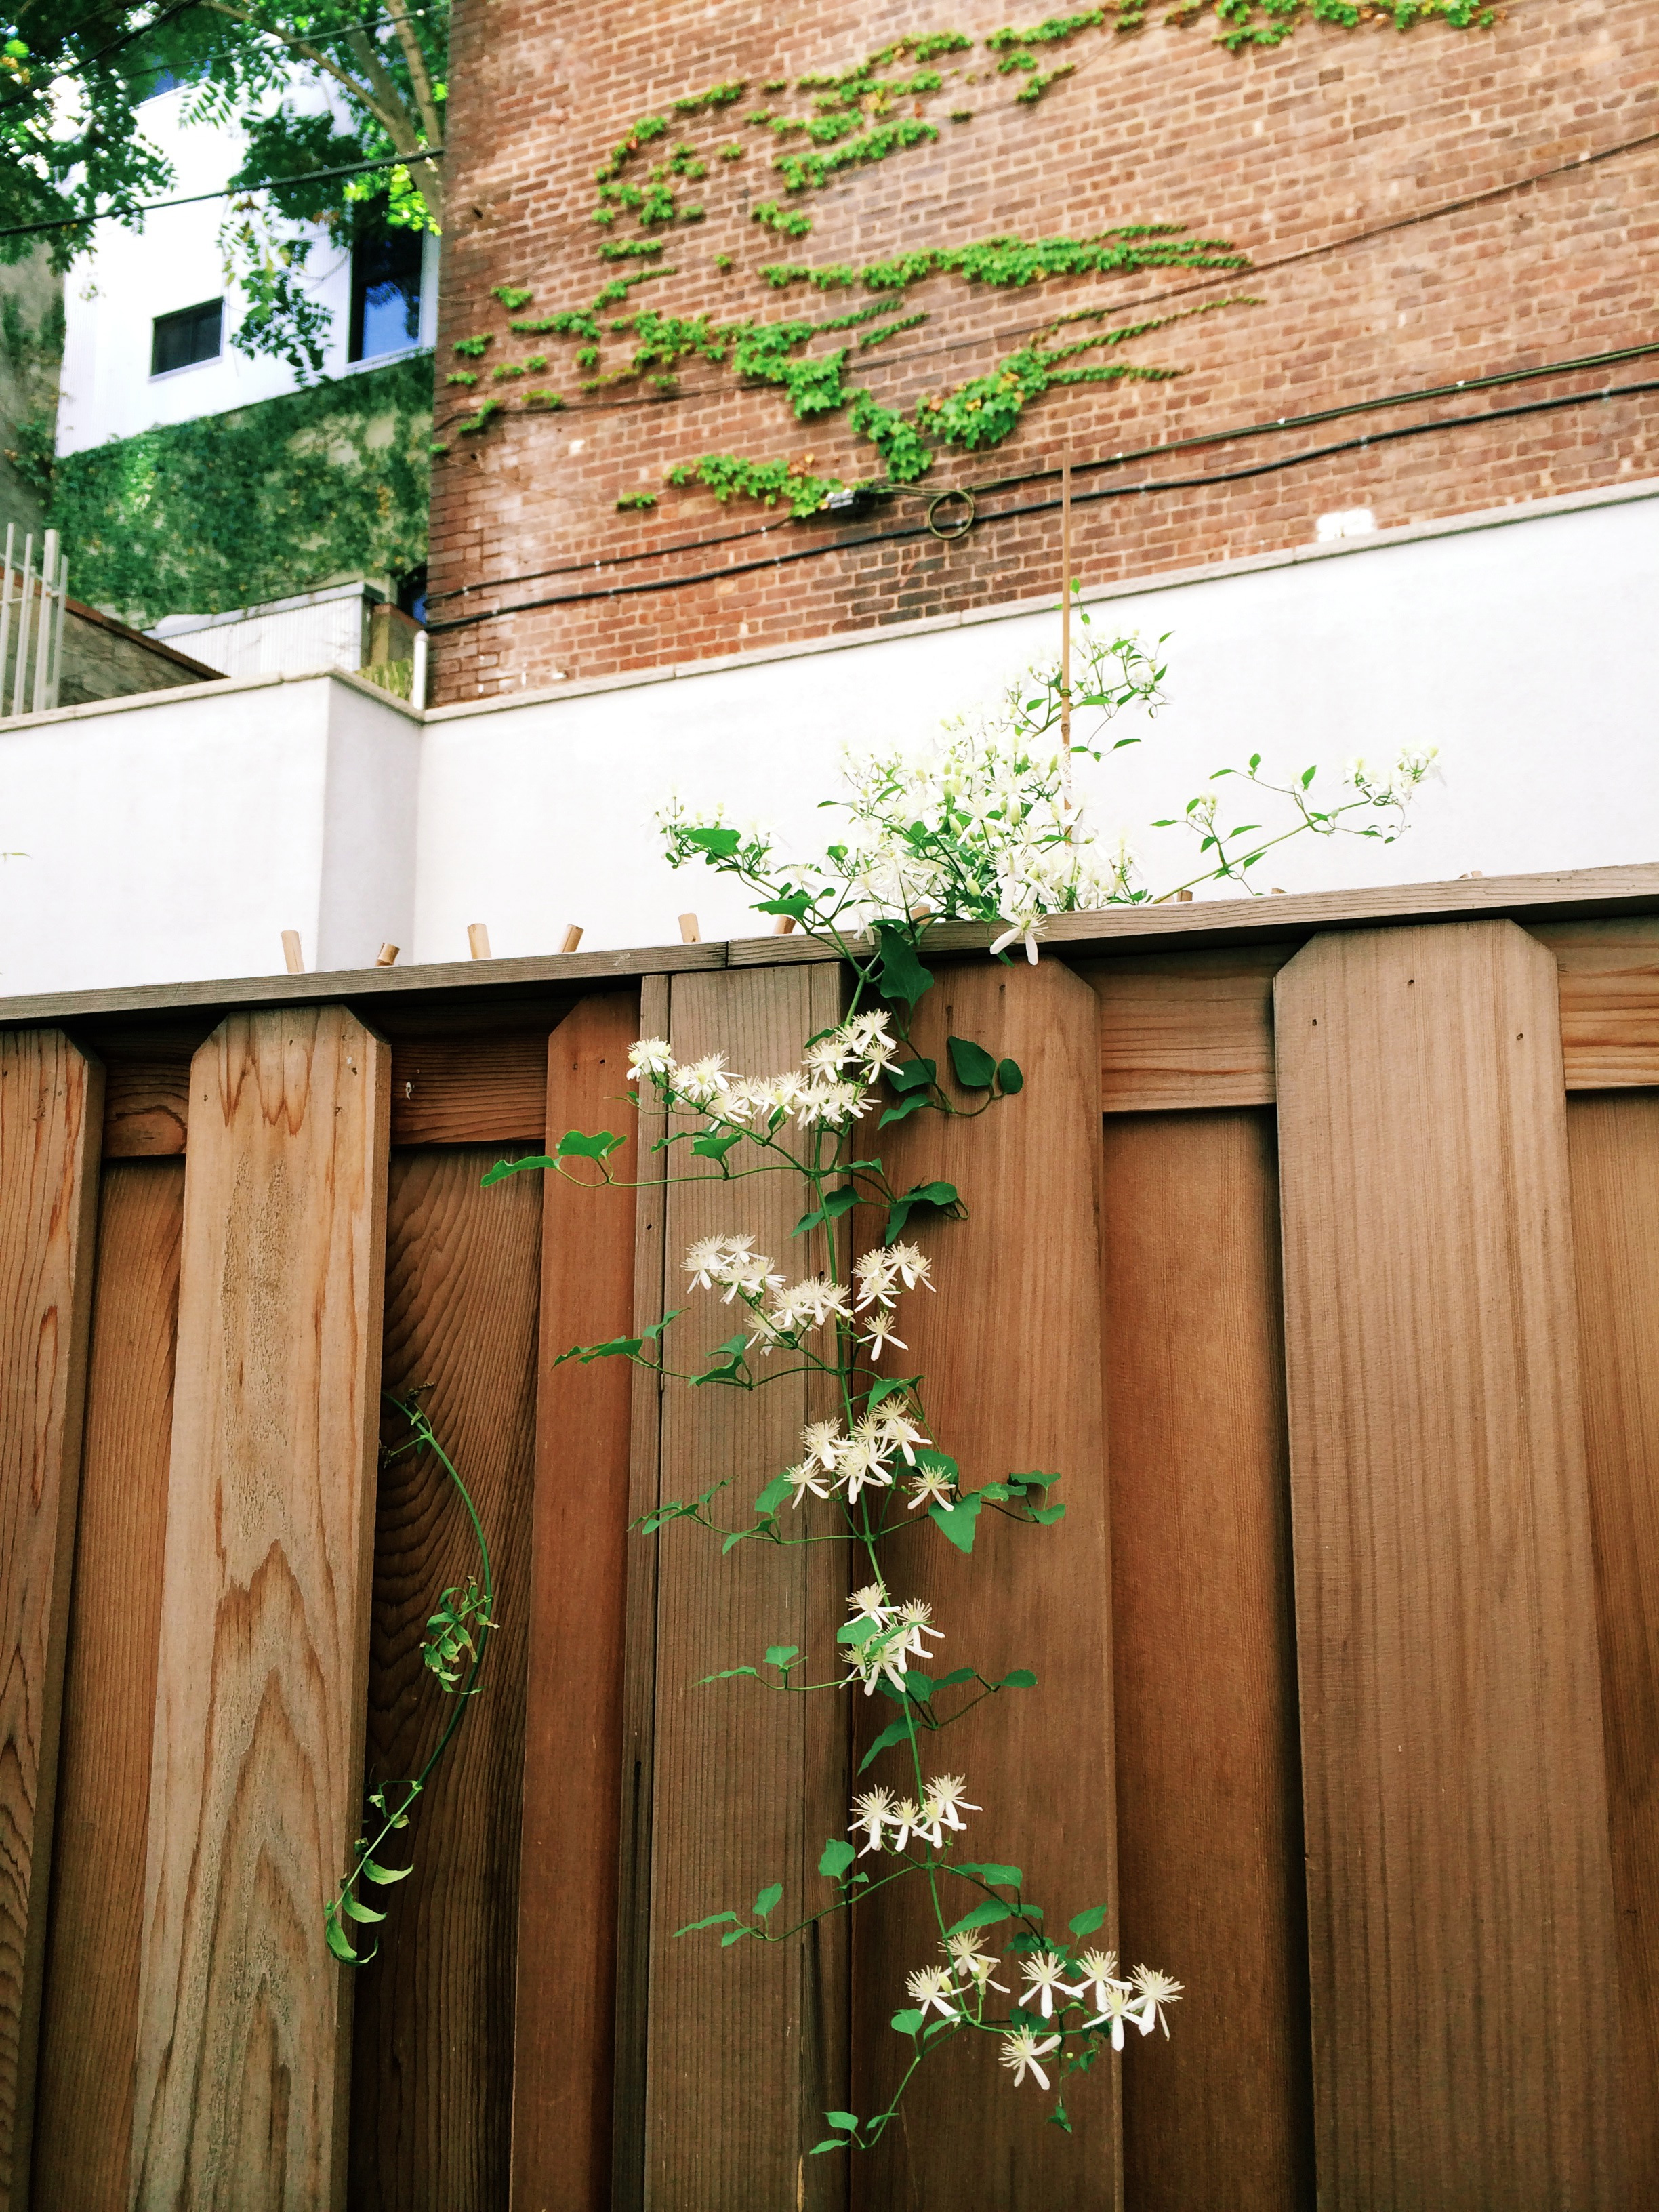 my neighbor's climbing vines are coming over the wall (free plants!).  i think these are clematis?